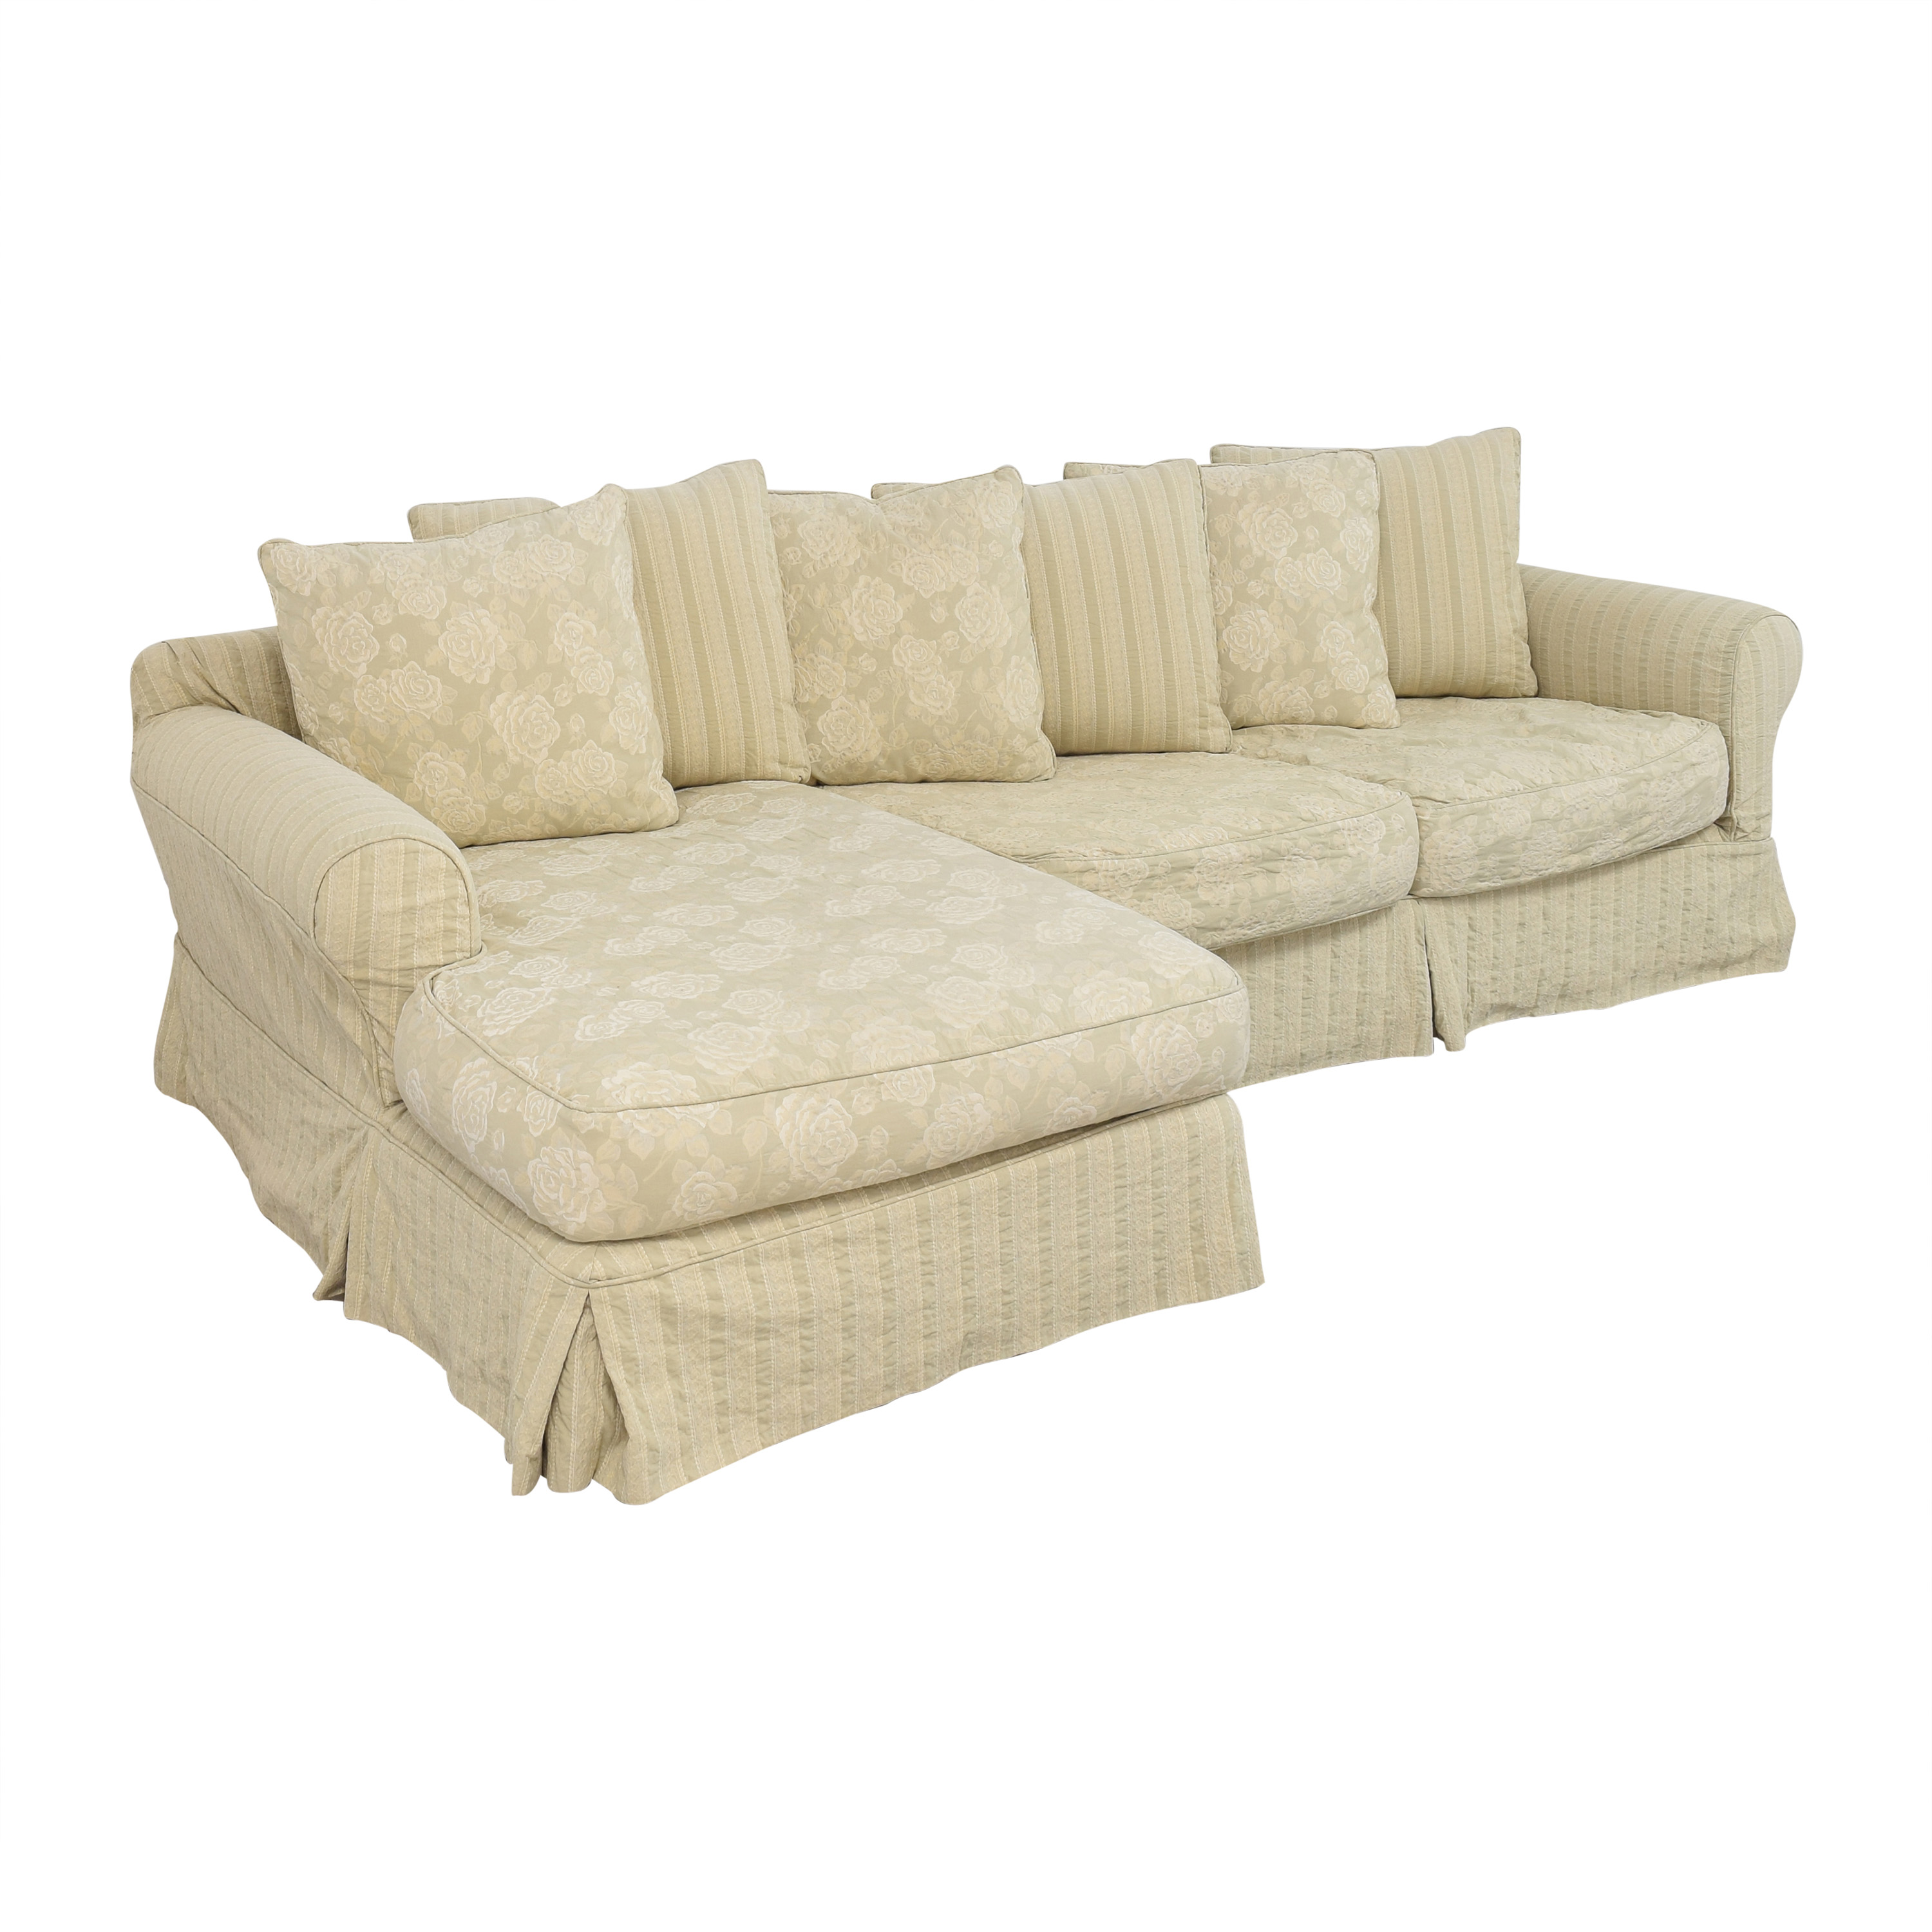 shop Cisco Brothers Slipcovered Chaise Sectional Sofa Cisco Brothers Sofas